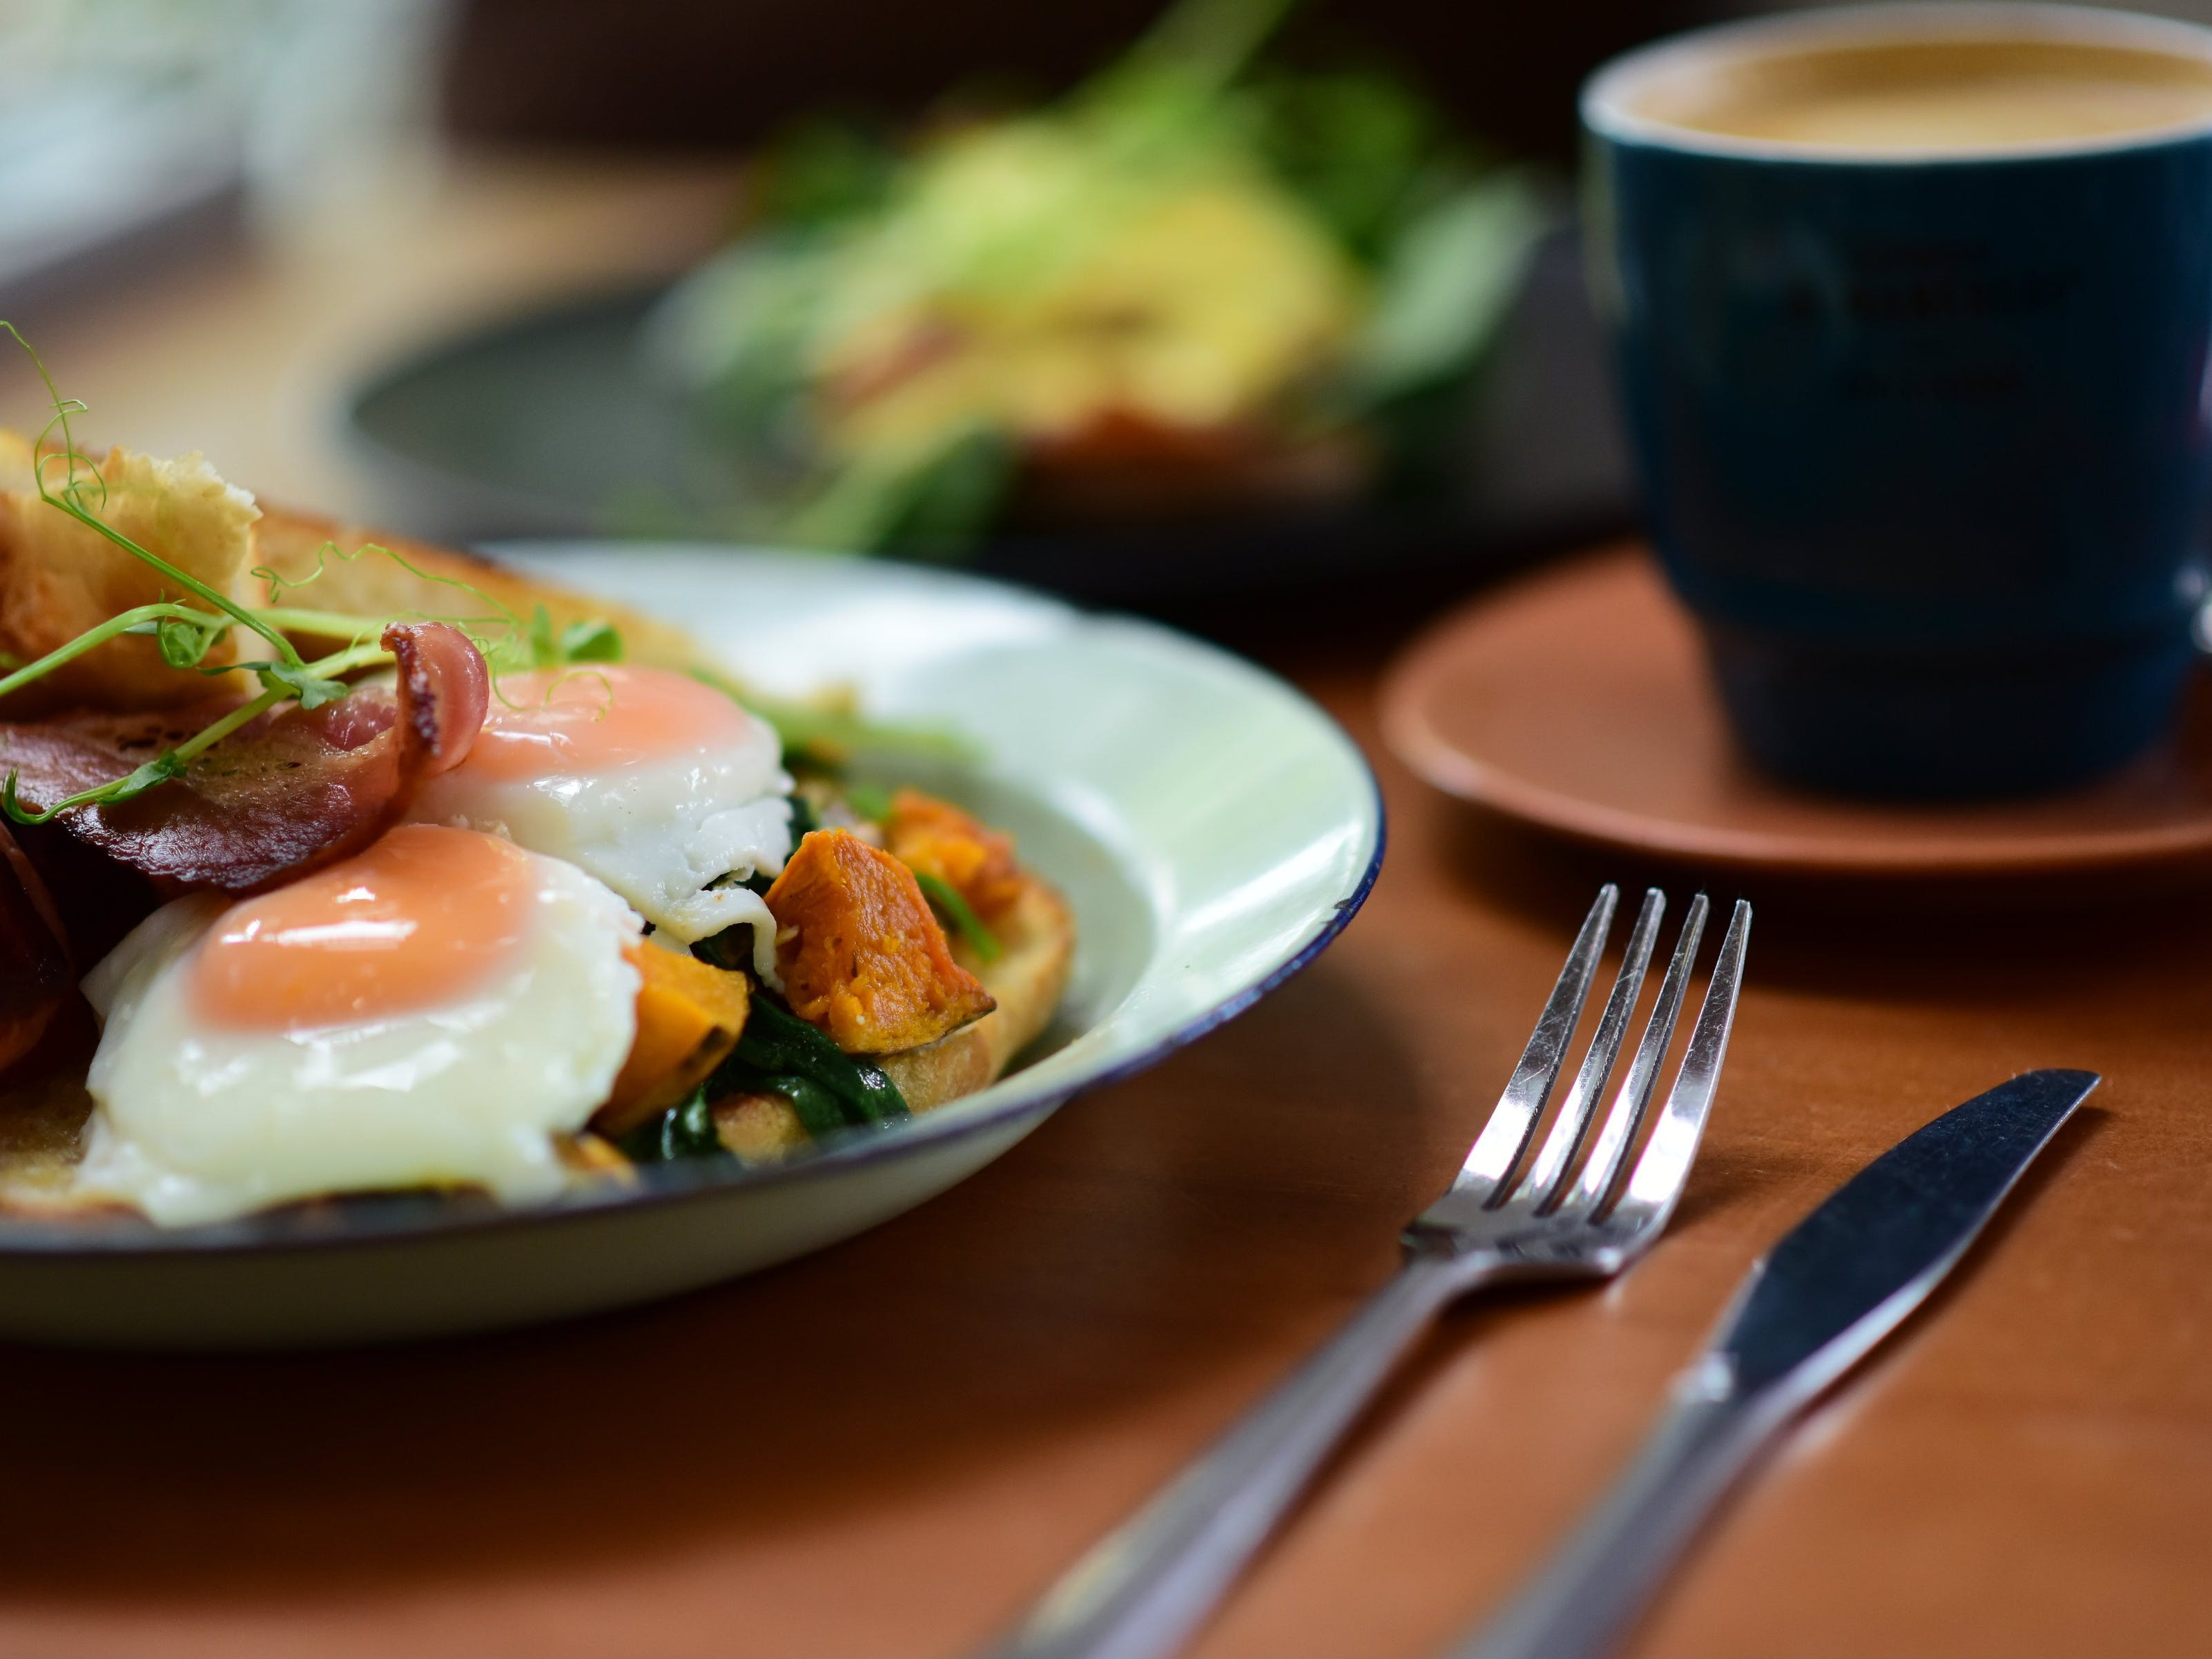 Bacon, eggs and bubble and squeak with a mug of coffee